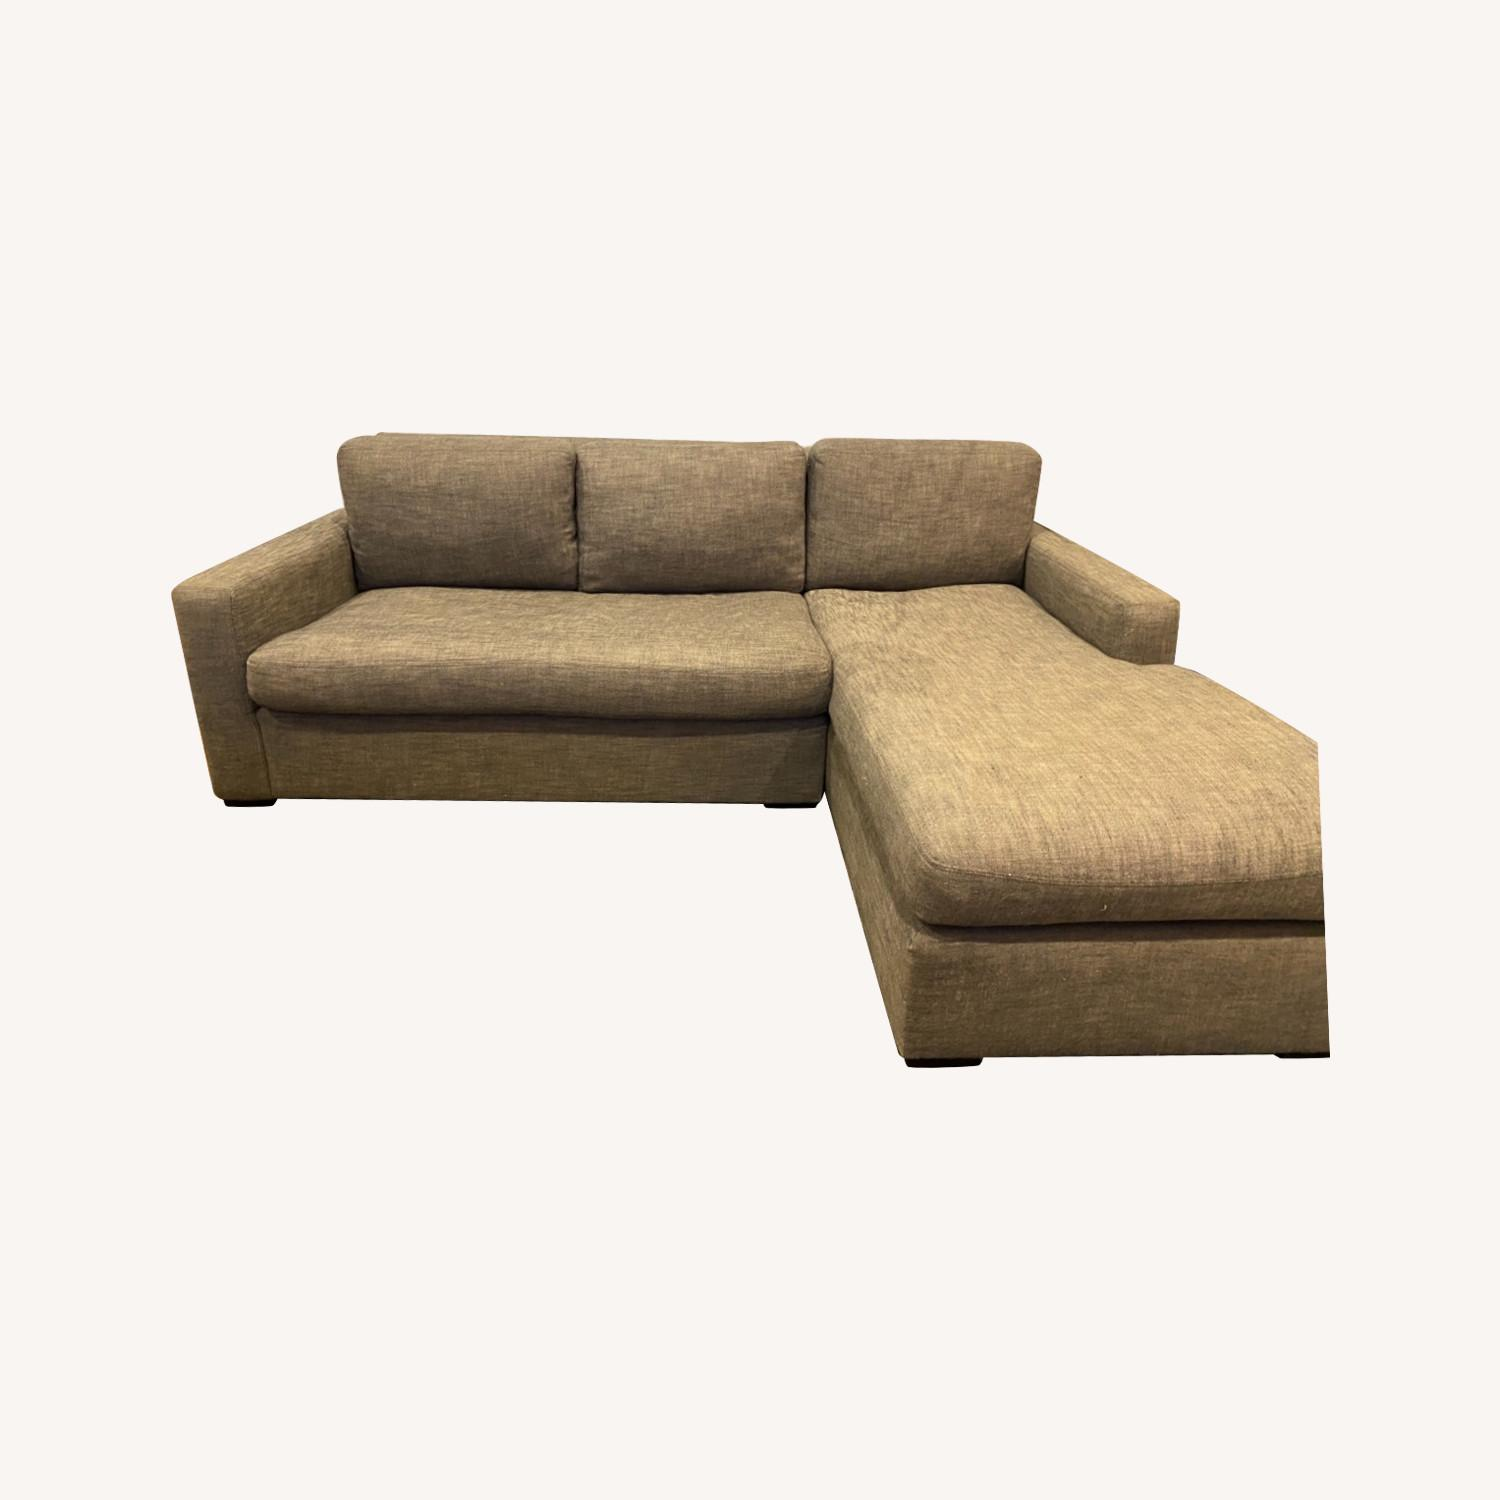 Restoration Hardware Maxwell Right Arm Chaise - image-0